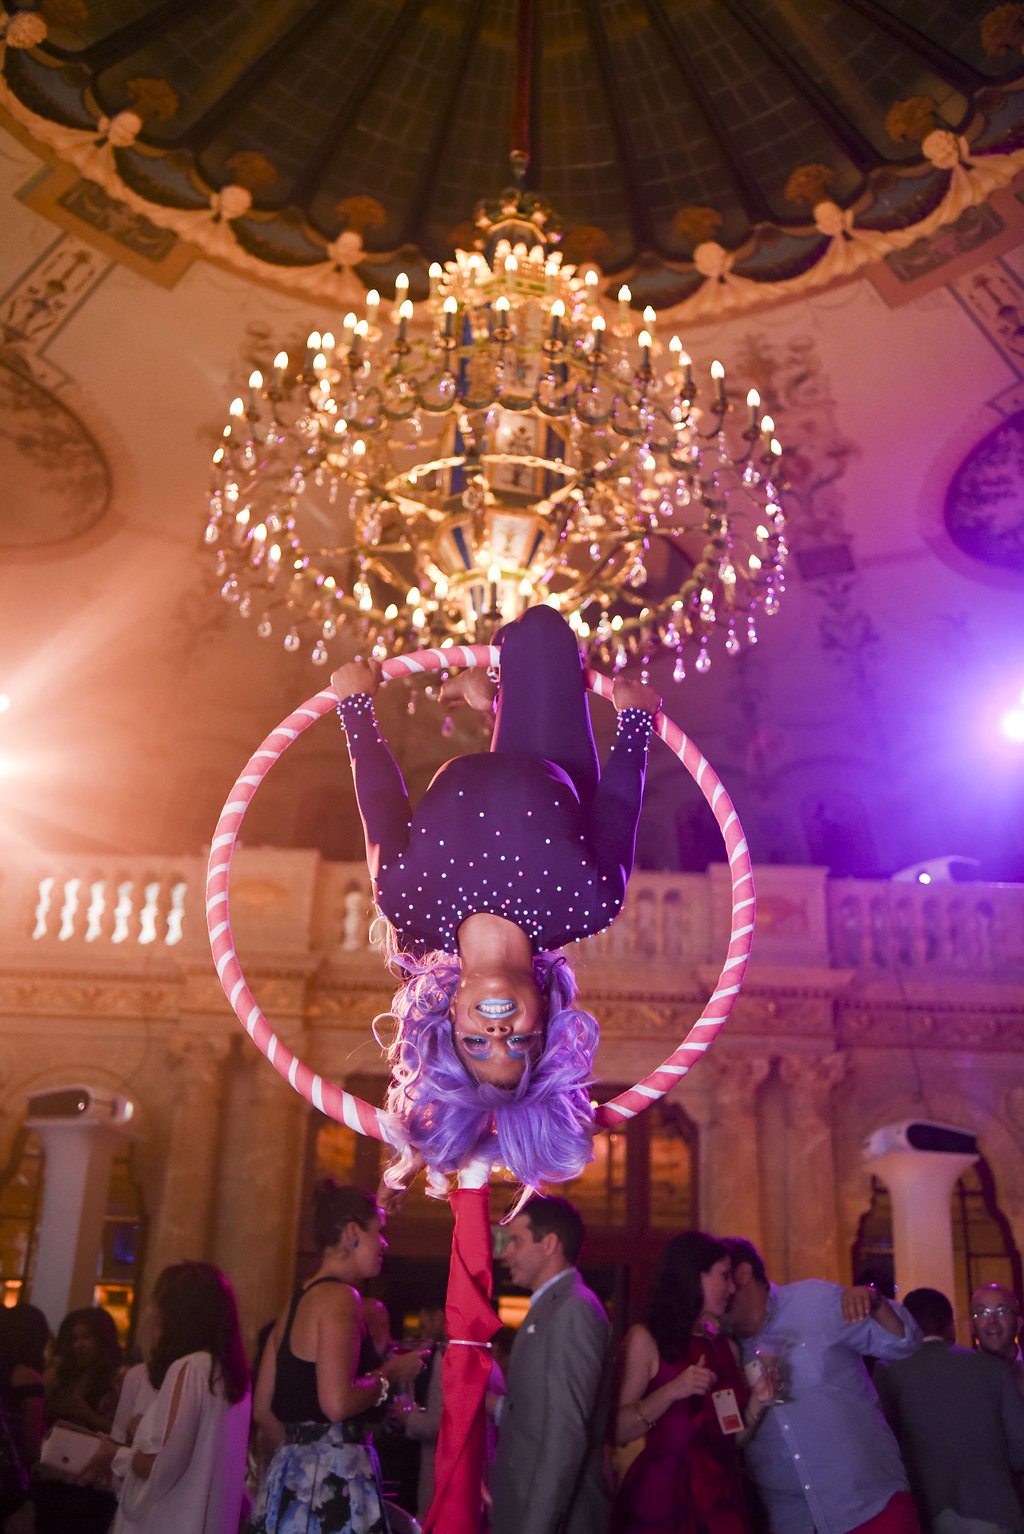 Woman suspended in a circular ring doing acrobatics